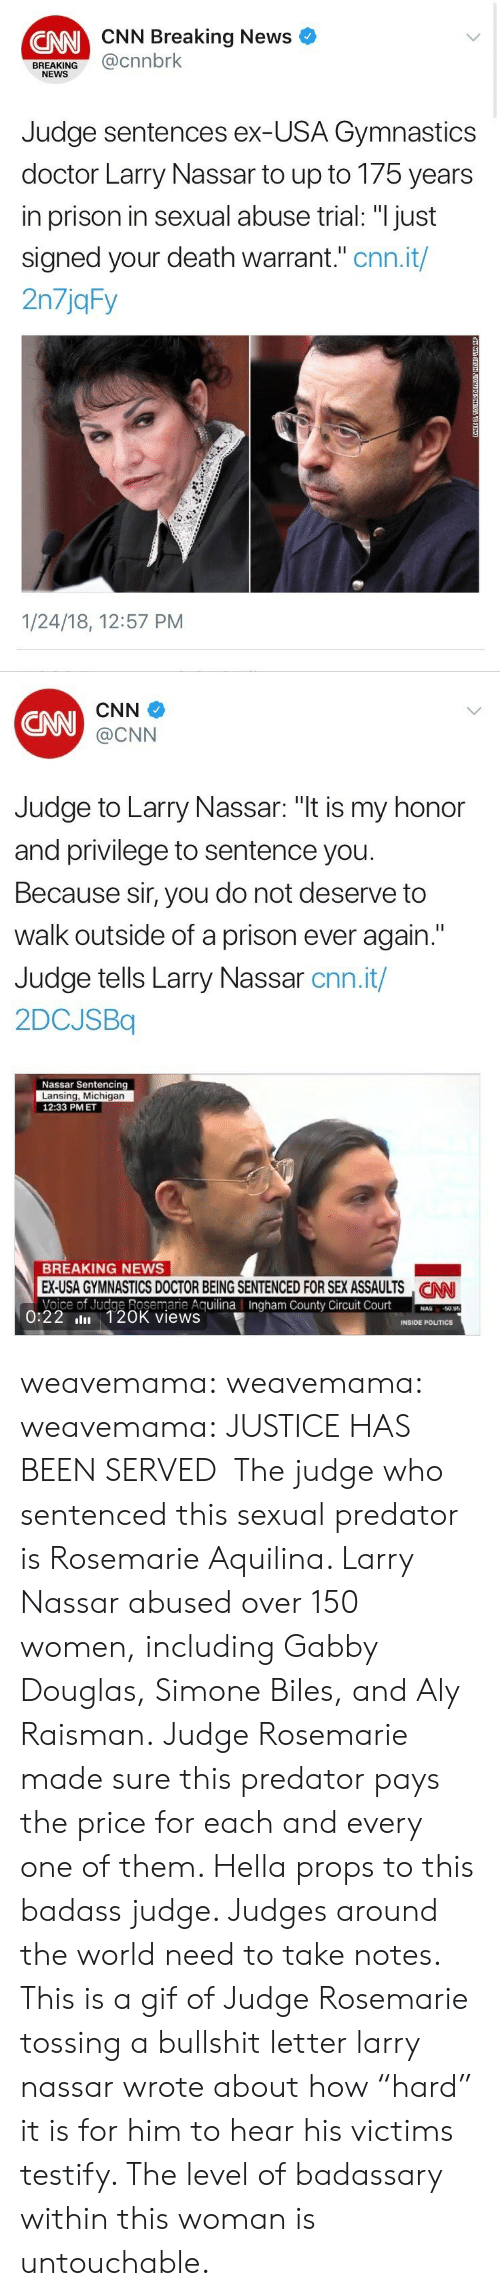 """Gymnastics: CNN Breaking News  CNN  BREAKING@cnnbrk  NEWS  Judge sentences ex-USA Gymnastics  doctor Larry Nassar to up to 175 years  in prison in sexual abuse trial: """"I just  signed your death warrant."""" cnn.it/  2n7jqFy  1/24/18, 12:57 PM   CNN  CNN  @CNN  Judge to Larry Nassar: """"t is my honor  and privilege to sentence you  Because sir, you do not deserve to  walk outside of a prison ever again.""""  Judge tells Larry Nassar cnn.it/  2DCJSBq  Nassar Sentencing  Lansing, Michigan  12:33 PMET  BREAKING NEWS  EX-USA GYMNASTICS DOCTOR BEING SENTENCED FOR SEX ASSAULTS NN  Voice of Judge Rosemarie AguilinaIngham County Circuit Court0  CAN  County  50.95  0:22 